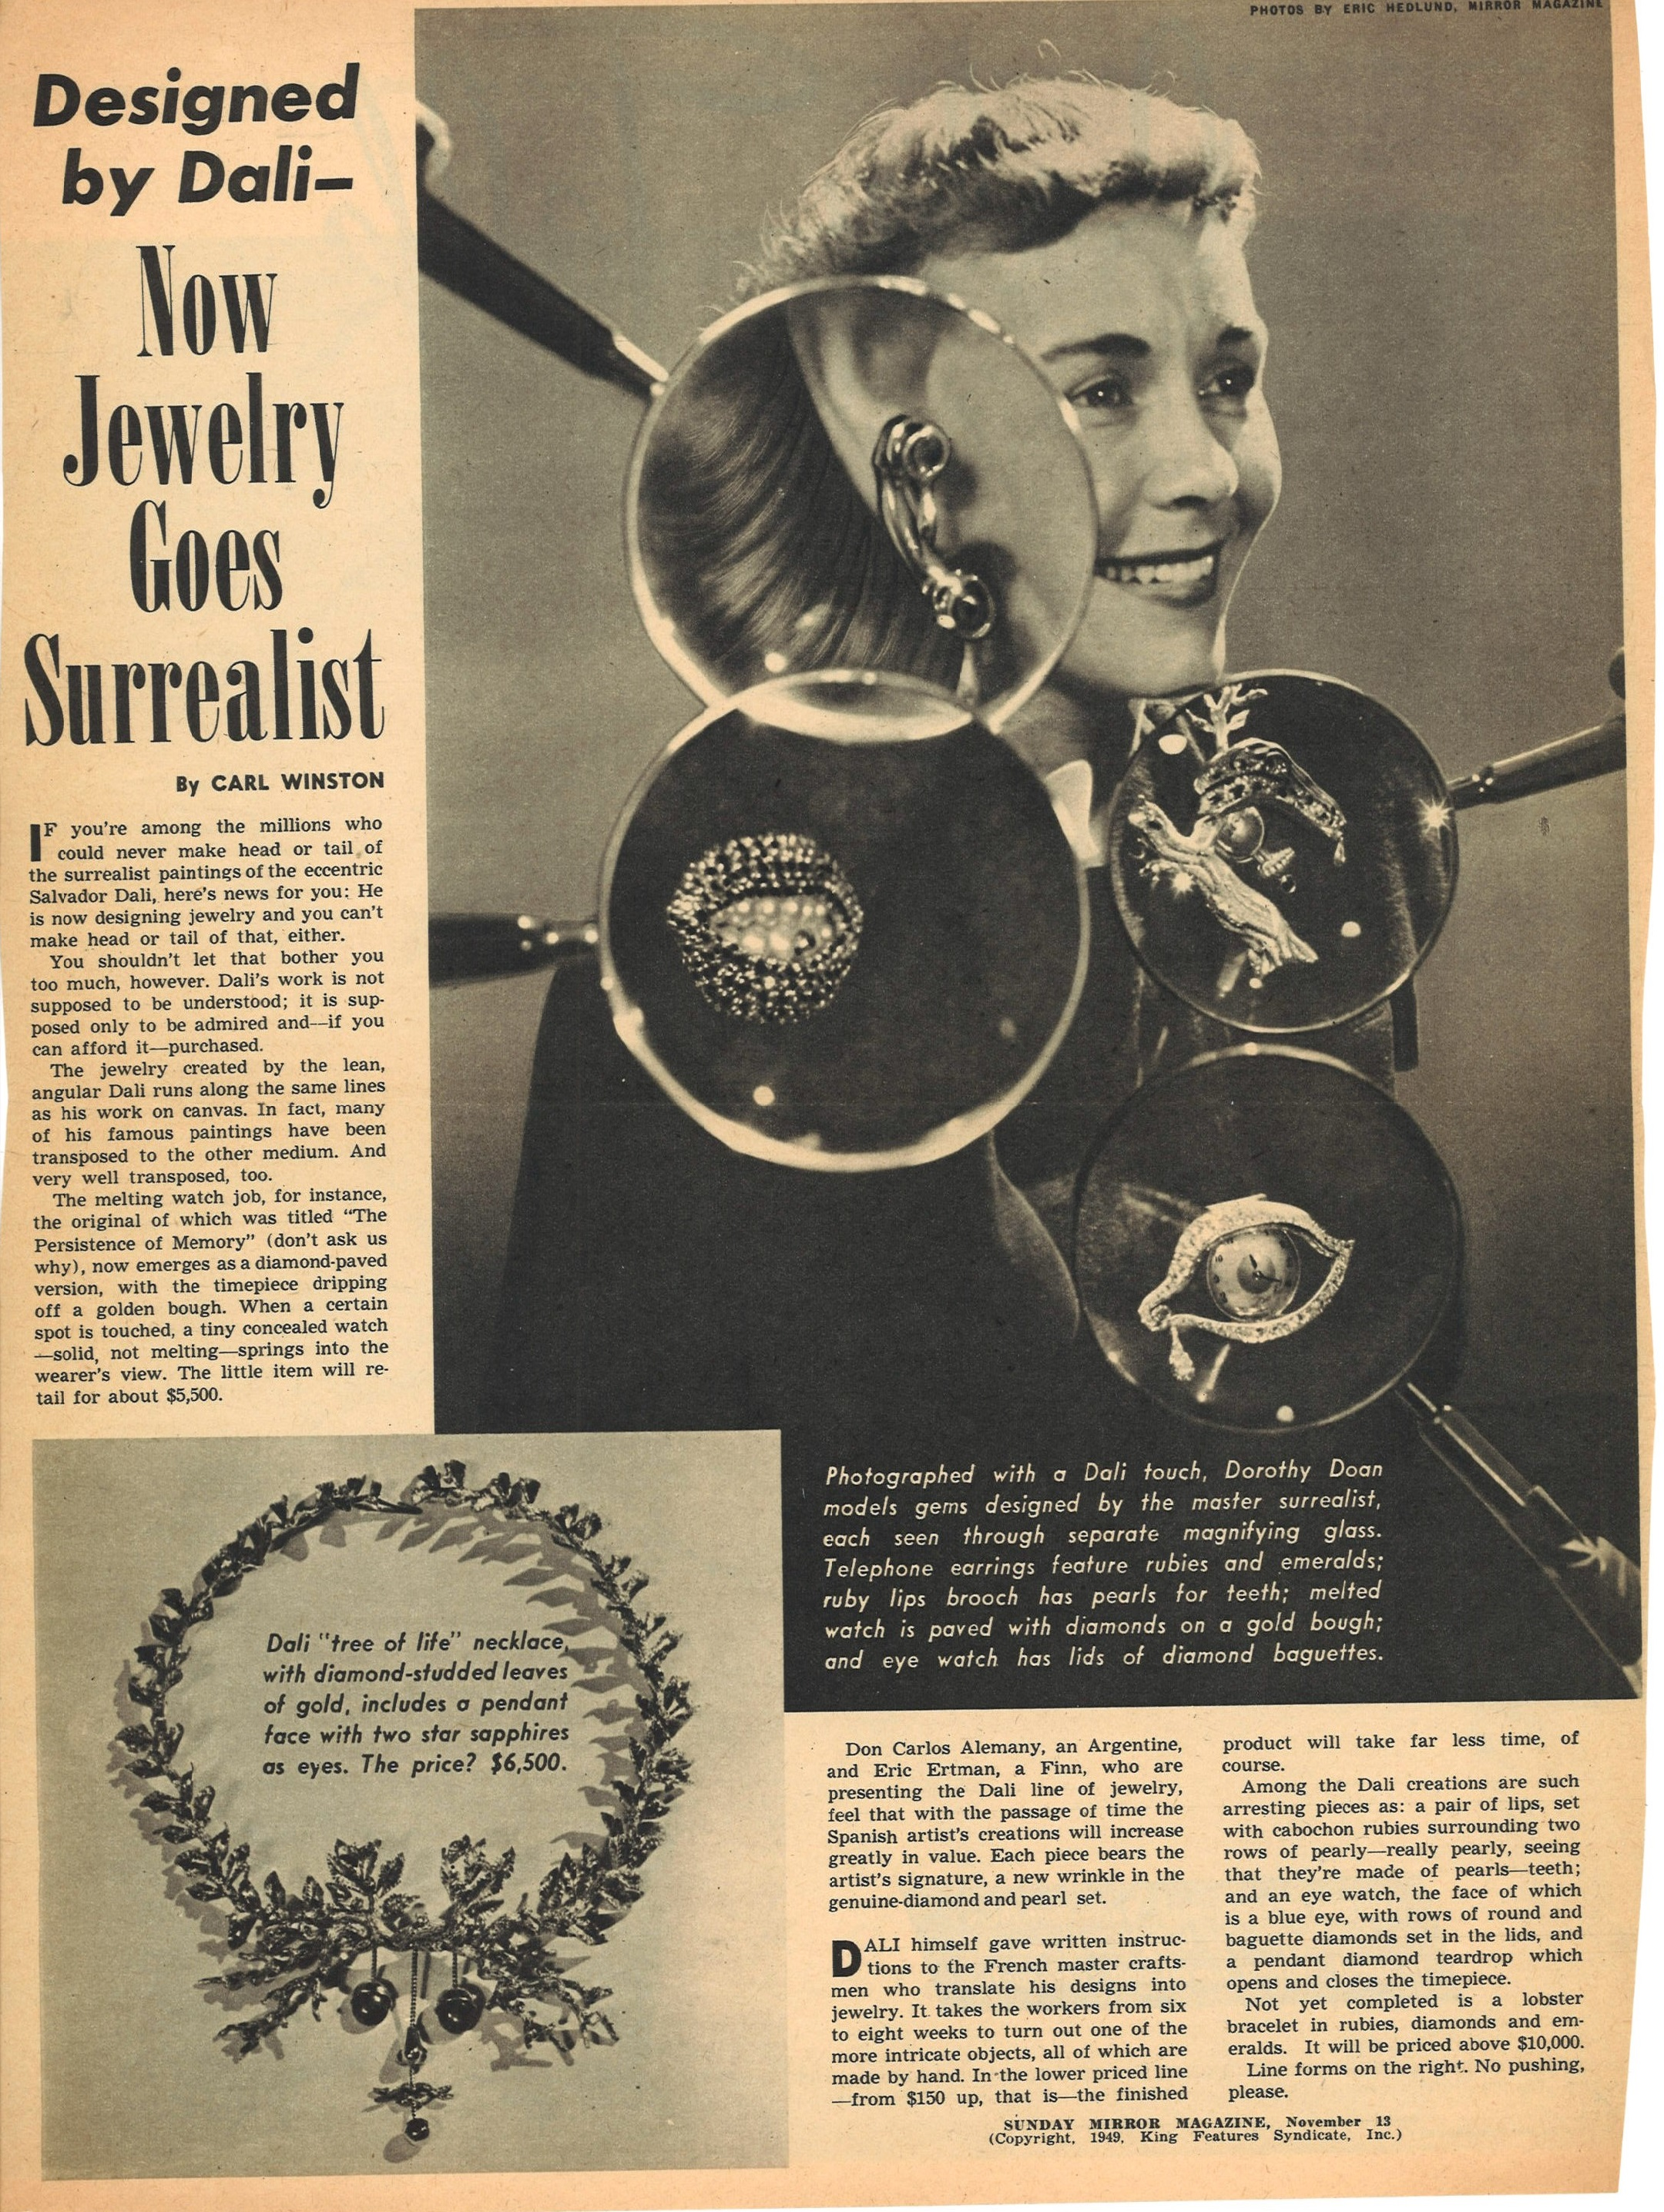 Art And Artist Files Reveal Surrealist Jewels Designed By